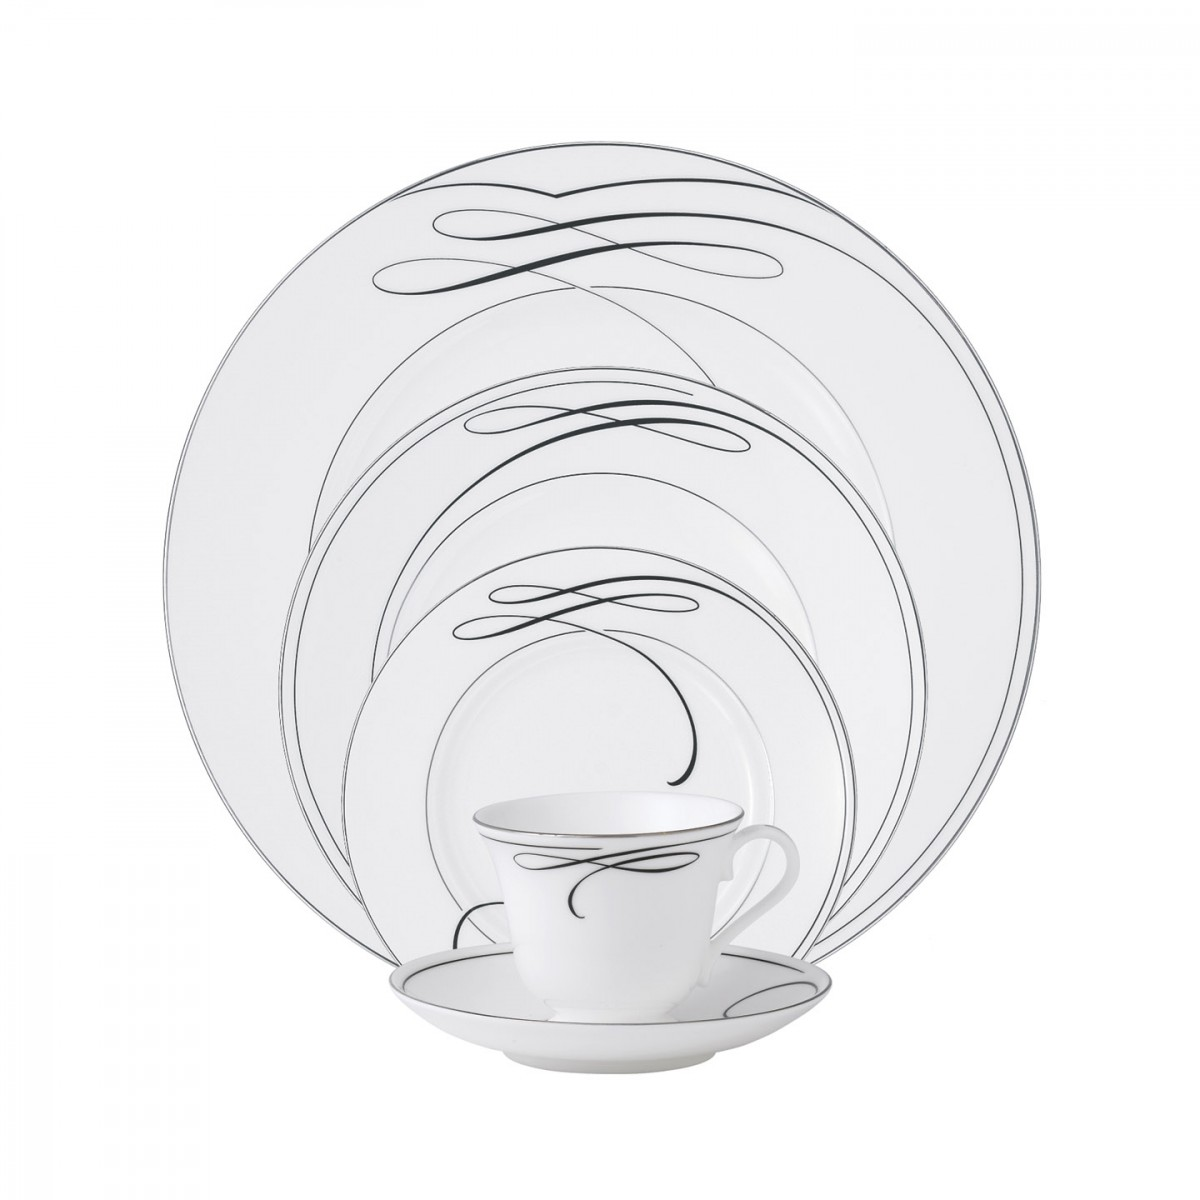 Waterford China Ballet Ribbon, 5 Piece Place Setting